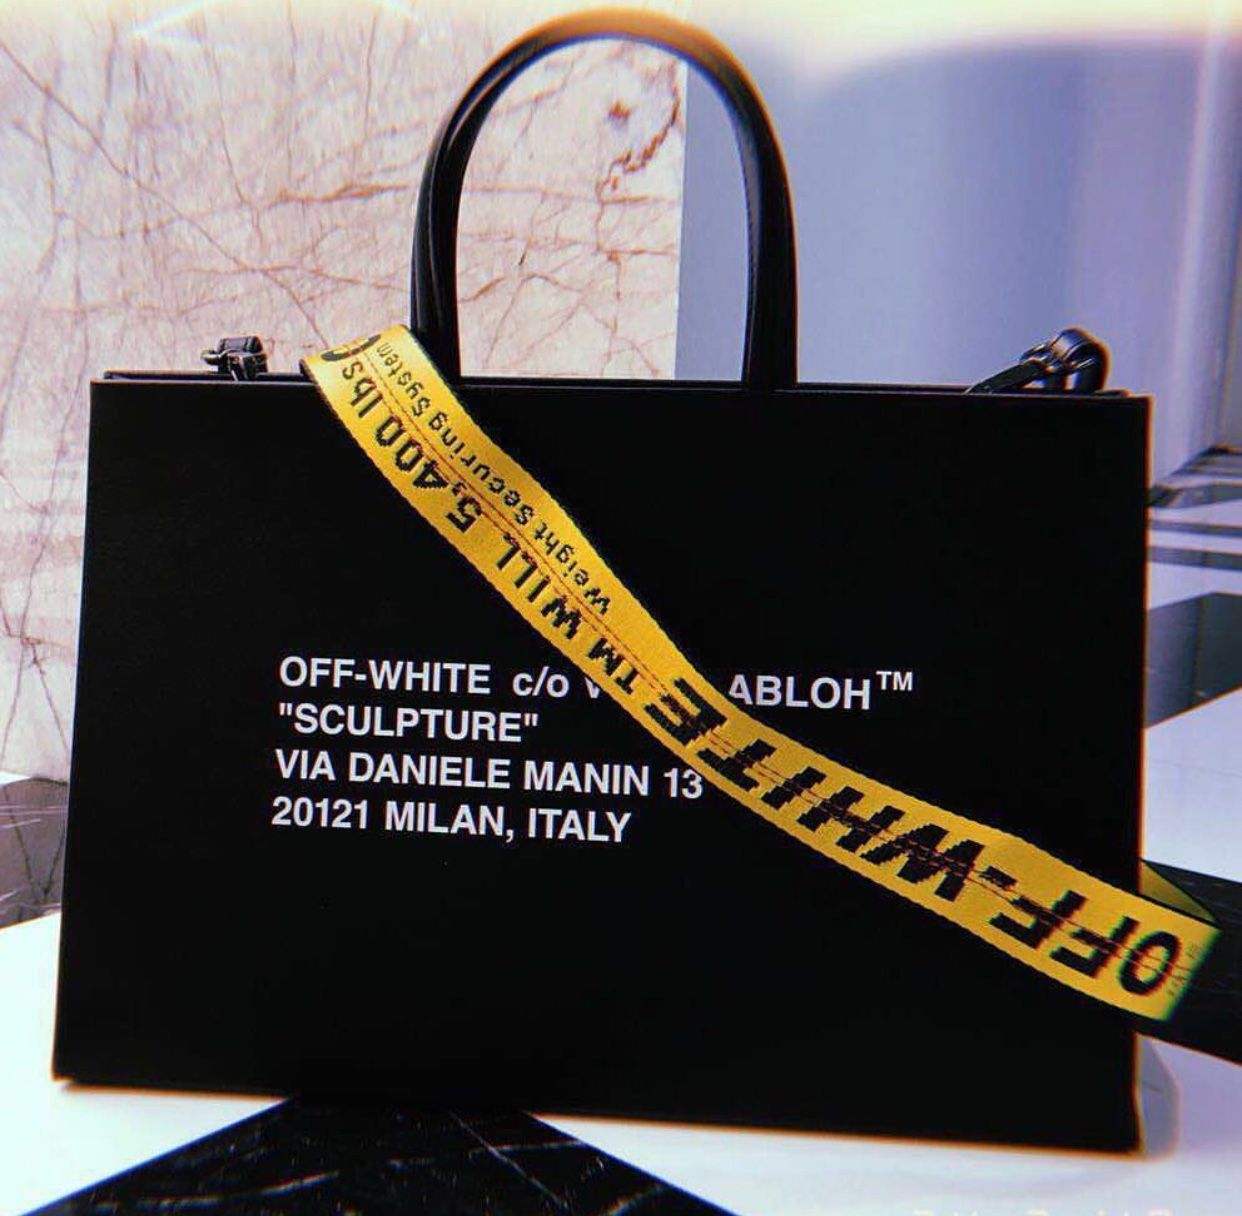 5959f4a0da96b8 FW18 OFF-WHITE 'Box Bag' | B A G S in 2019 | Bags, Fashion bags, Off ...